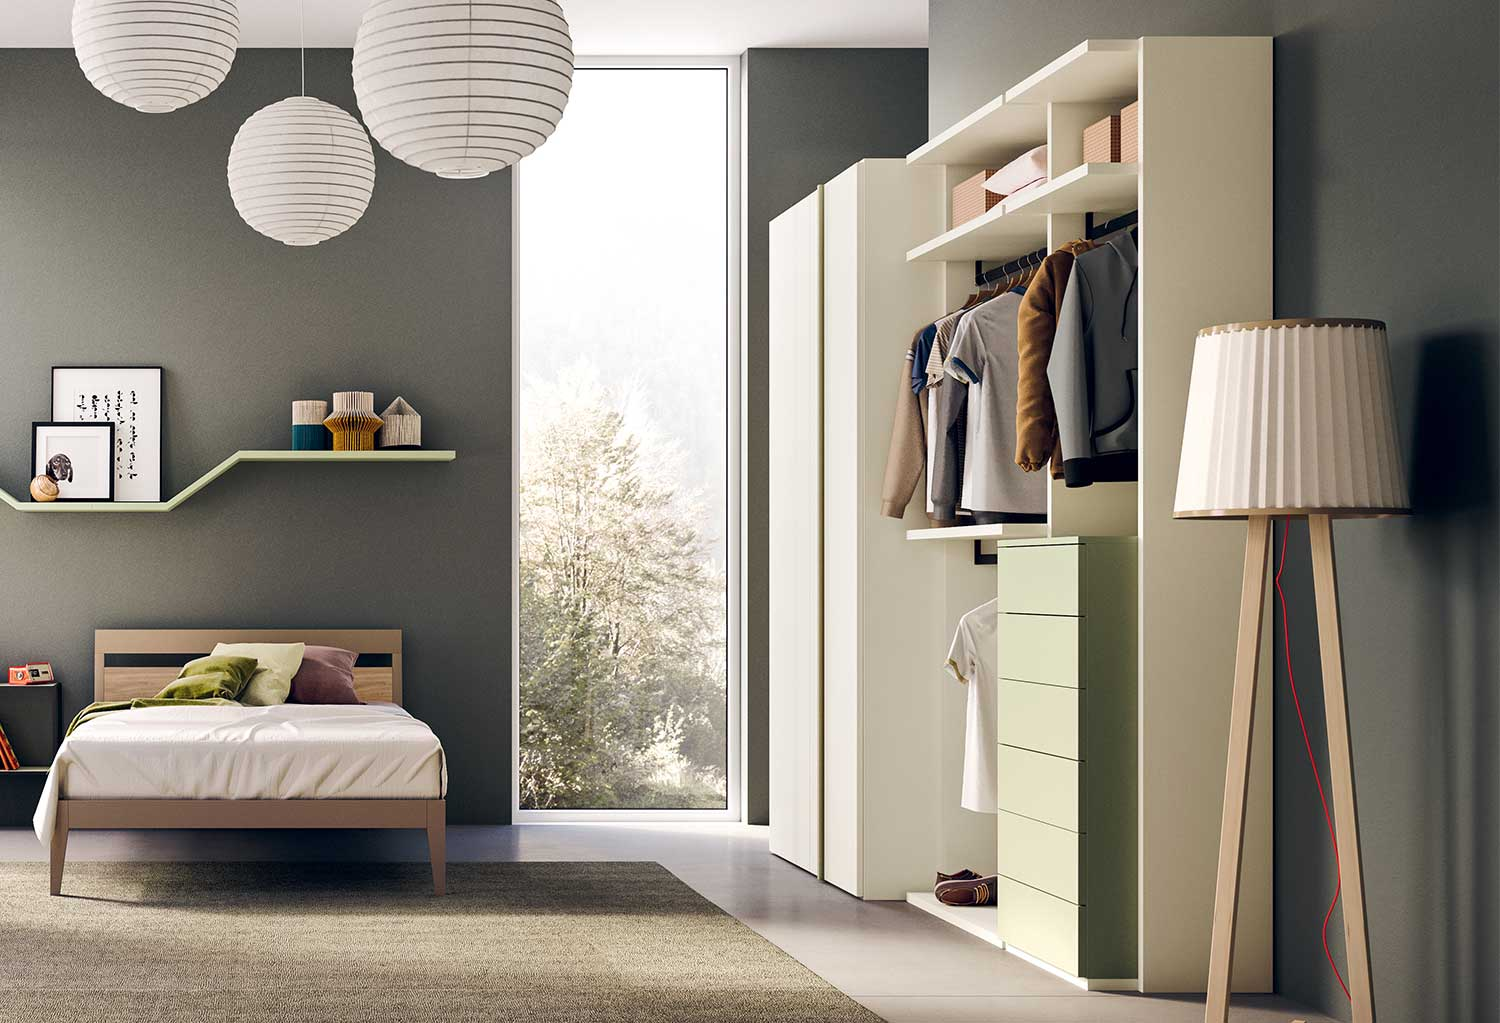 Flexy open wardrobe: this model includes two units of different widths, with clothes rails and drawers